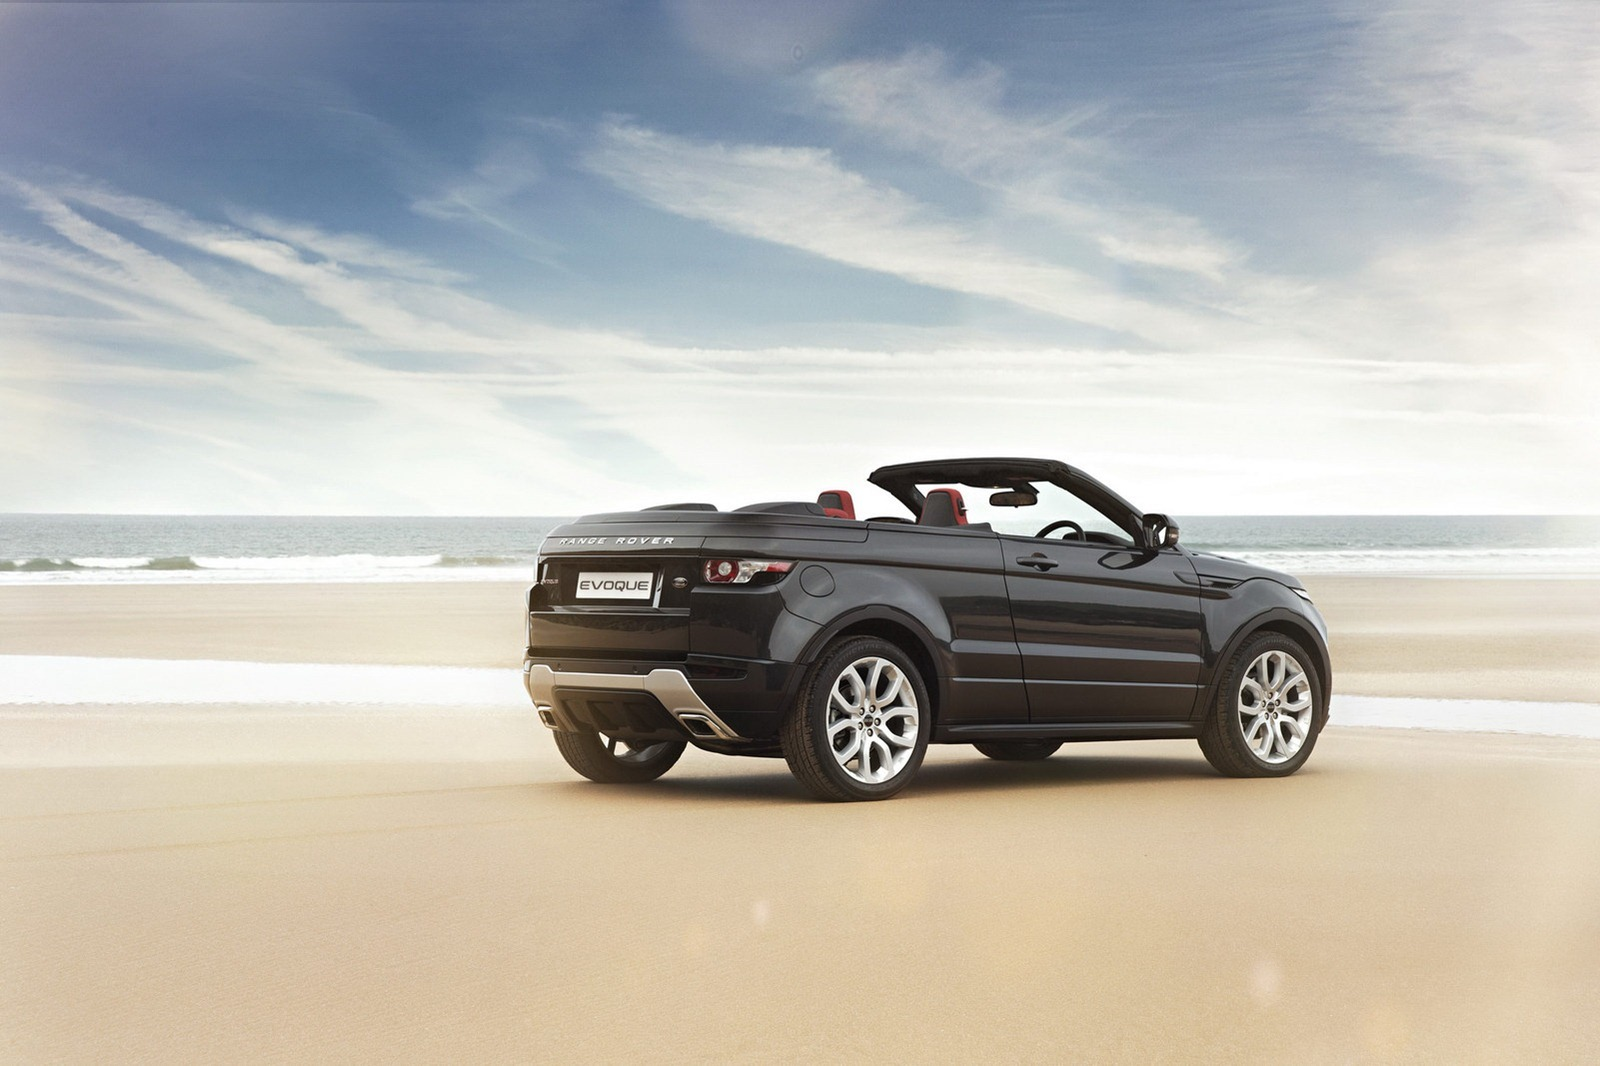 soft top convertible range rover evoque supposedly green lit carscoops. Black Bedroom Furniture Sets. Home Design Ideas